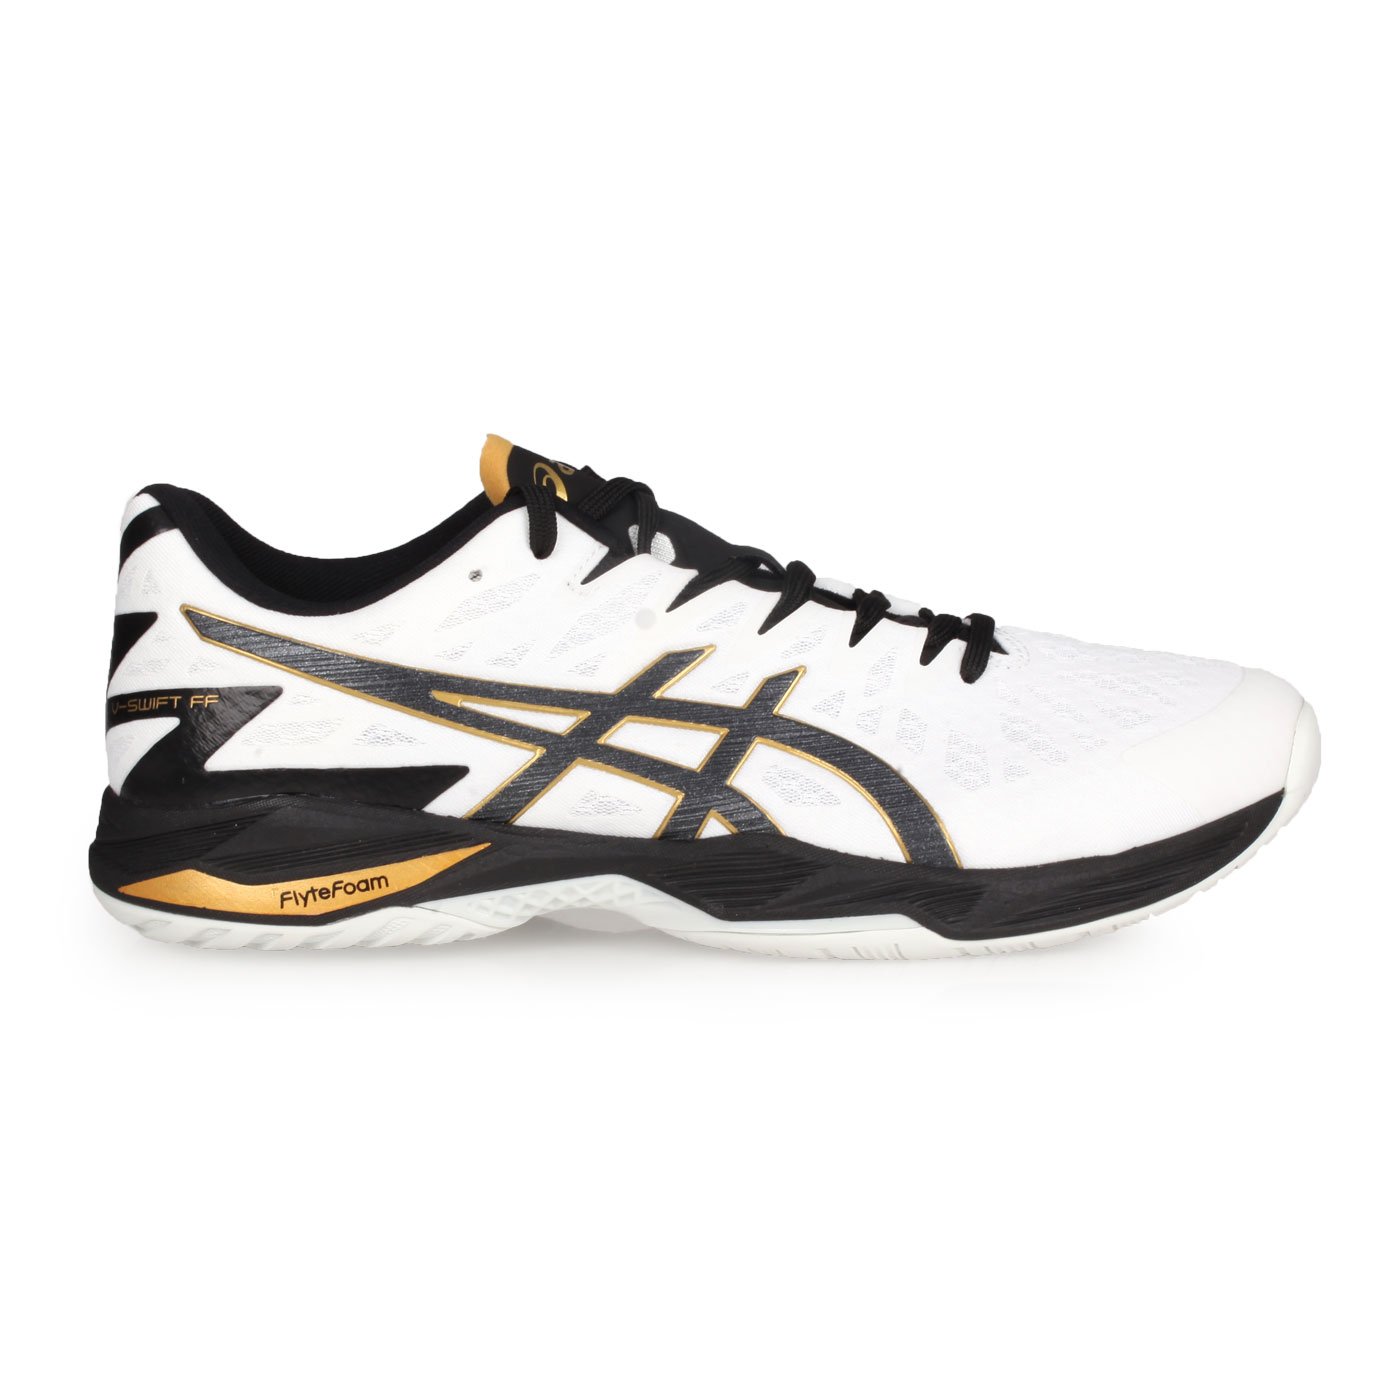 ASICS 排羽球鞋  @V-SWIFT FF 2@1053A027-100